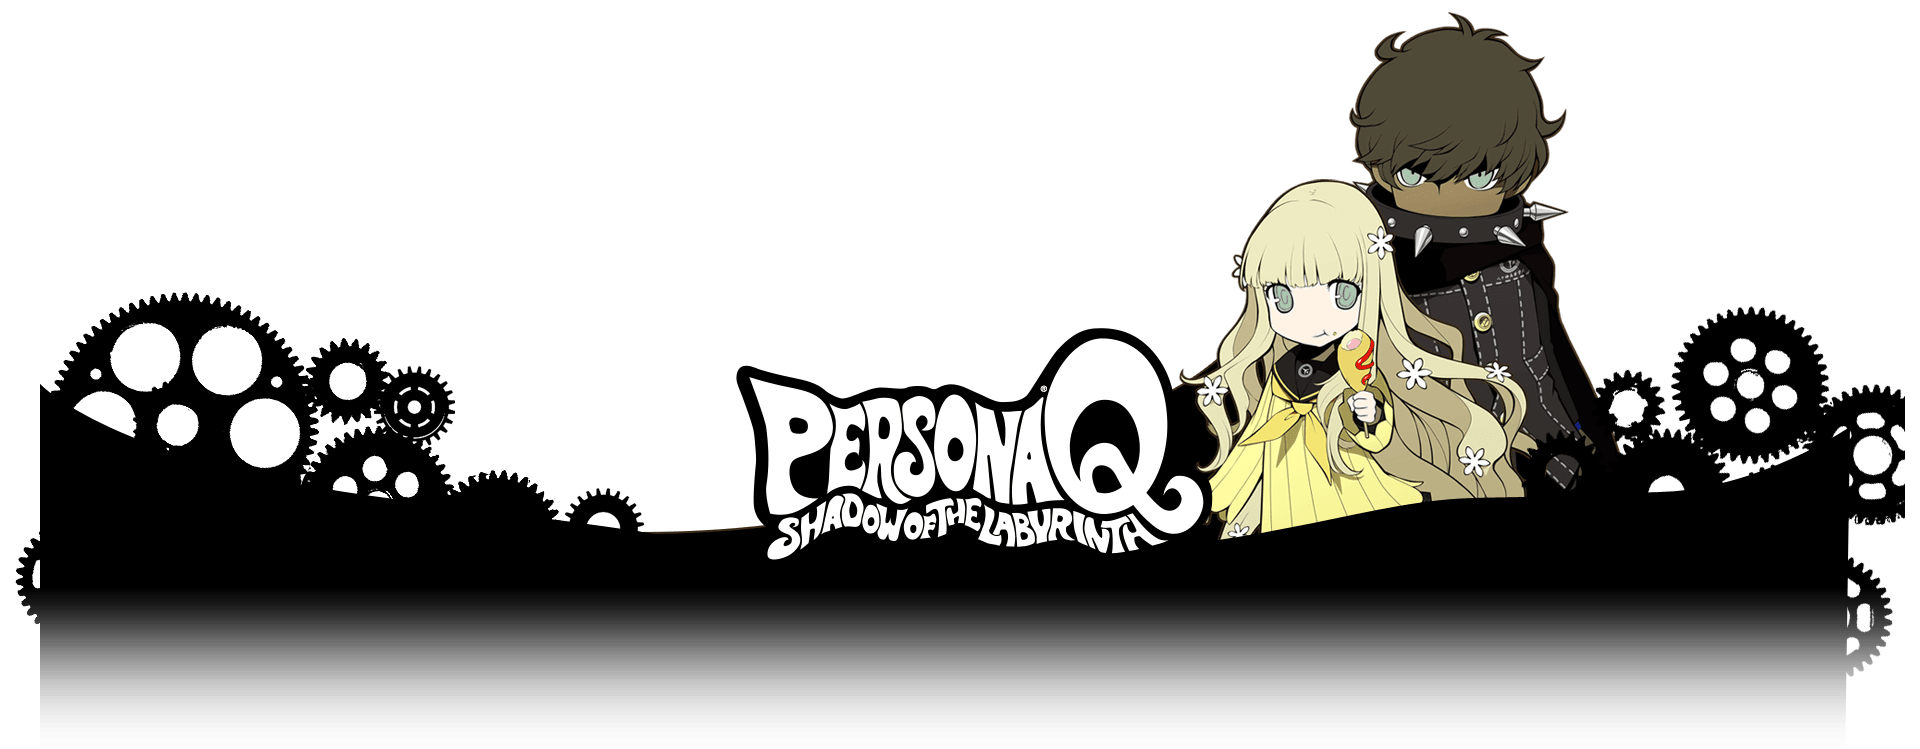 Persona Q: Shadow of the Labyrinth is coming Fall 2014 to